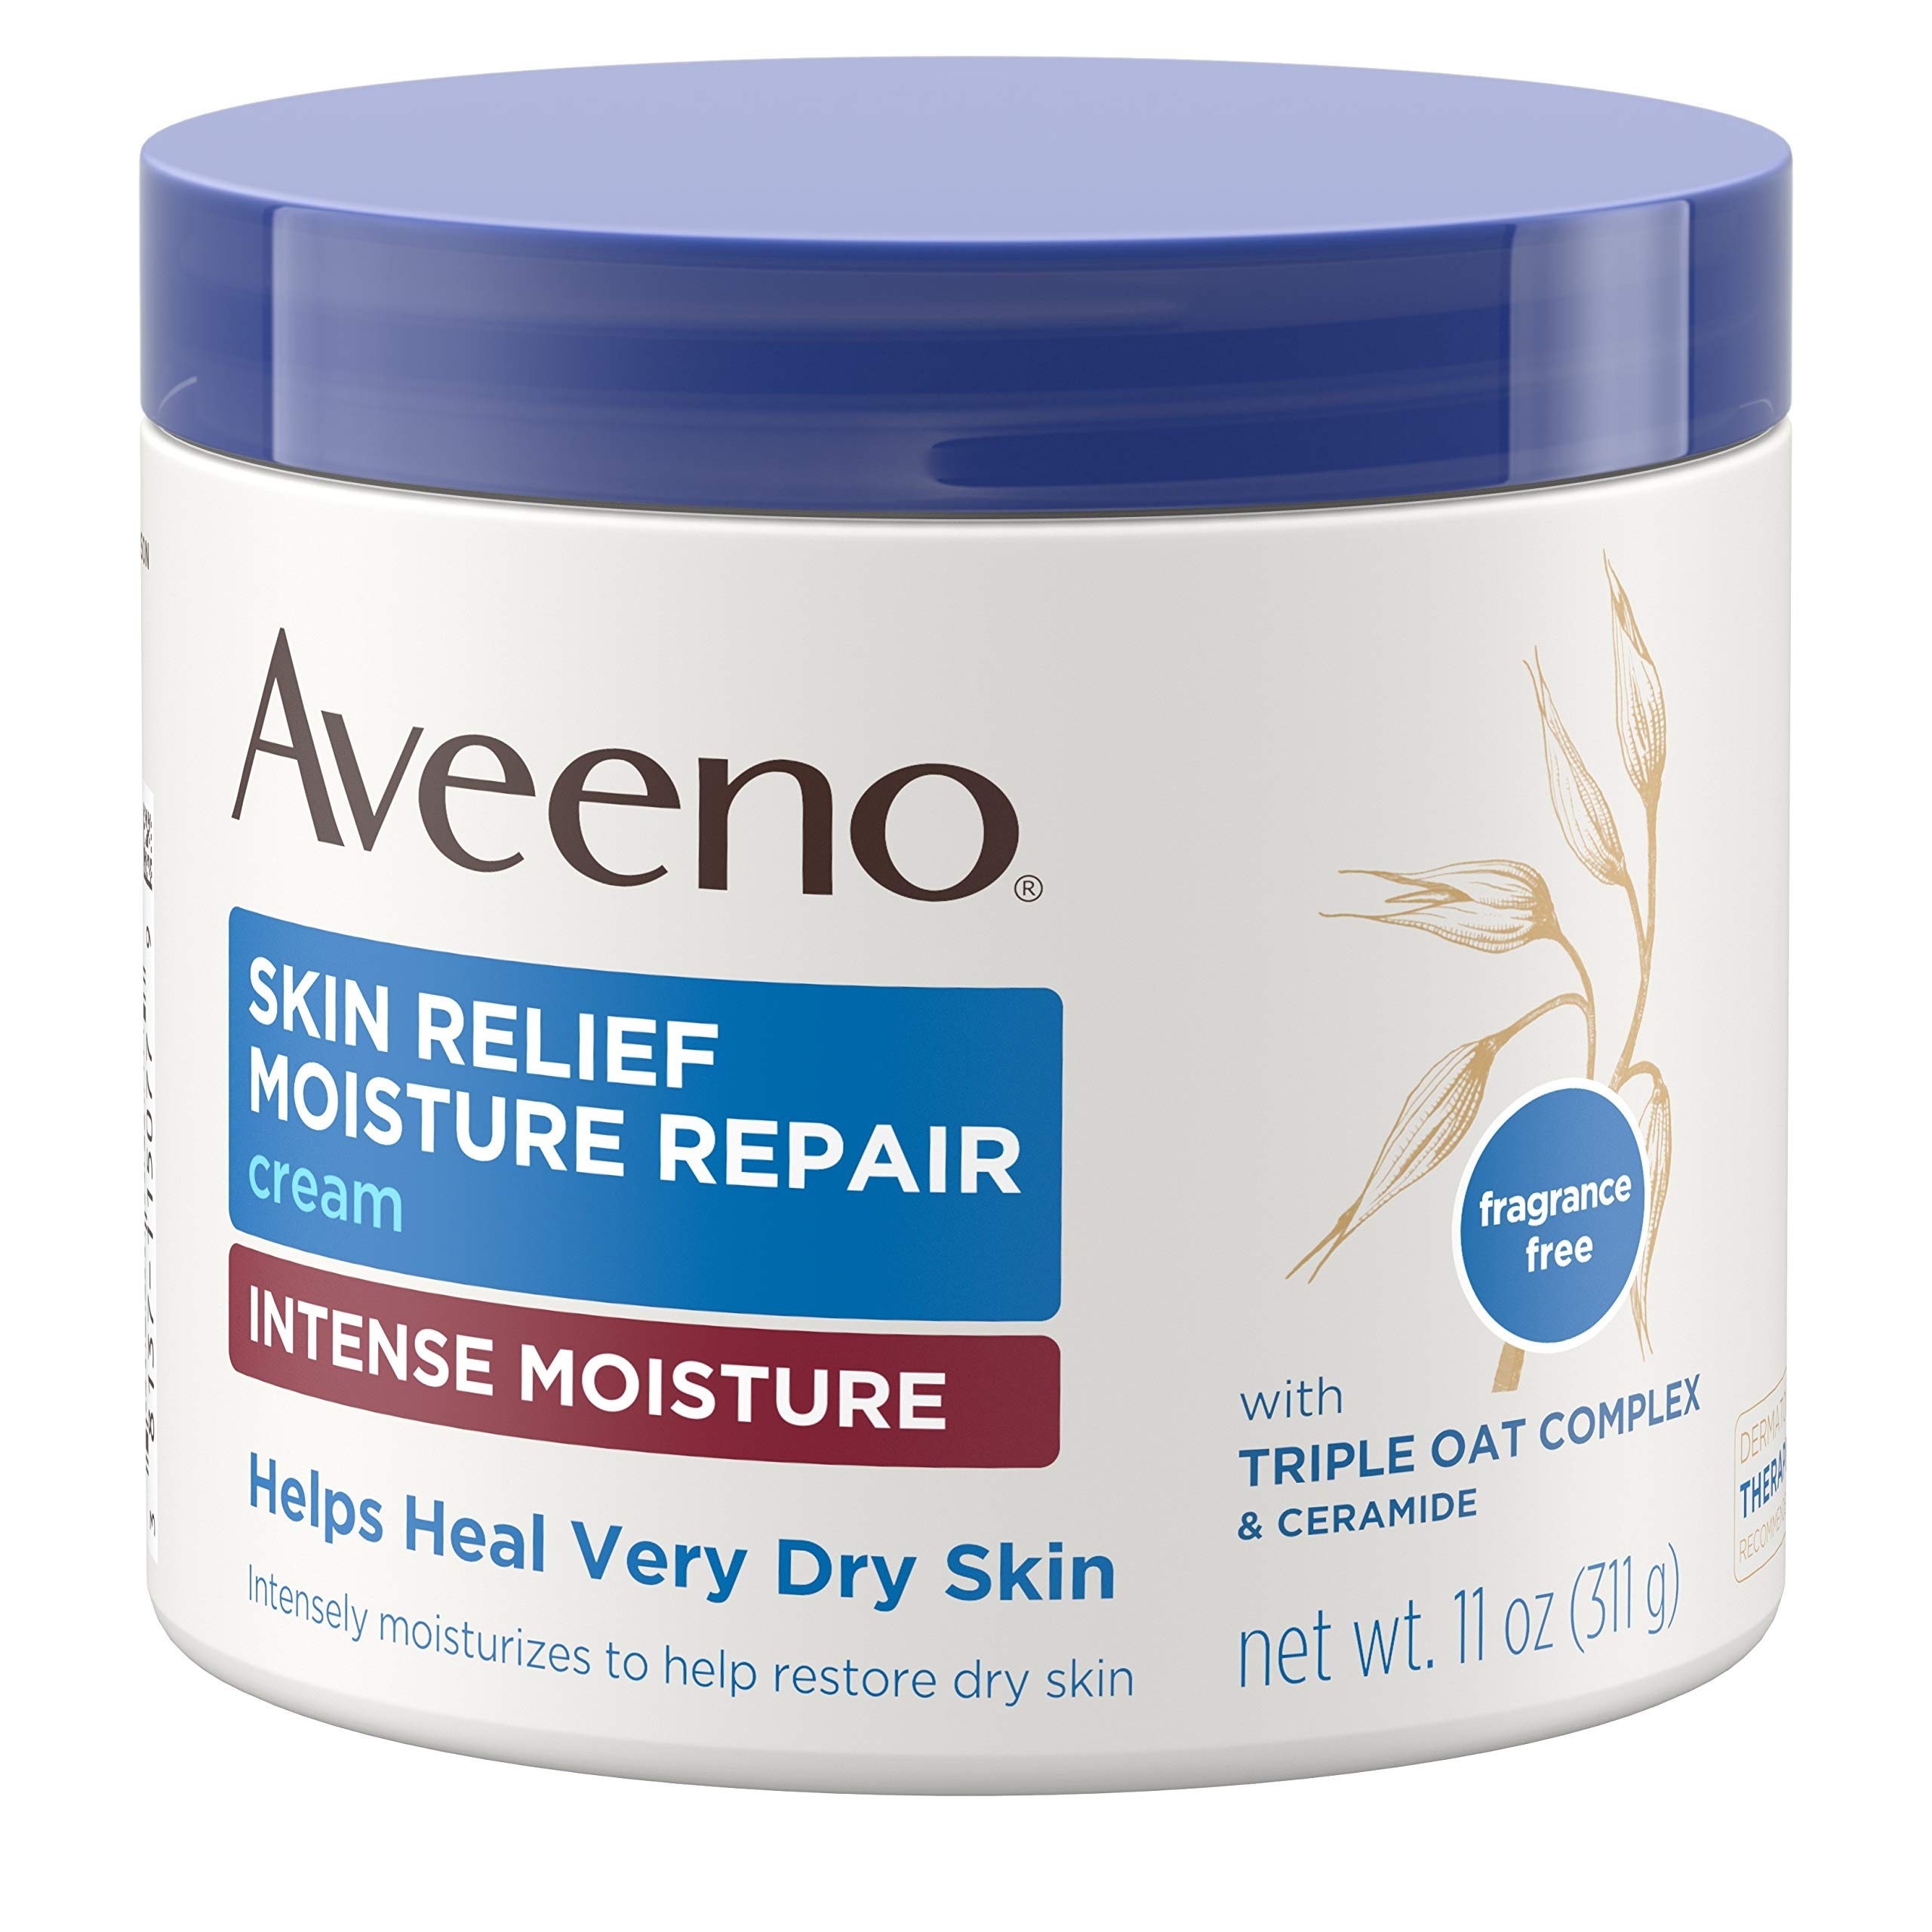 Aveeno Skin Relief Intense Moisture Repair Cream with Triple Oat Complex, Ceramide & Rich Emollients, Steroid- & Fragrance-Free Moisturizing Body Cream for Extra-Dry Skin, 11 oz by Aveeno